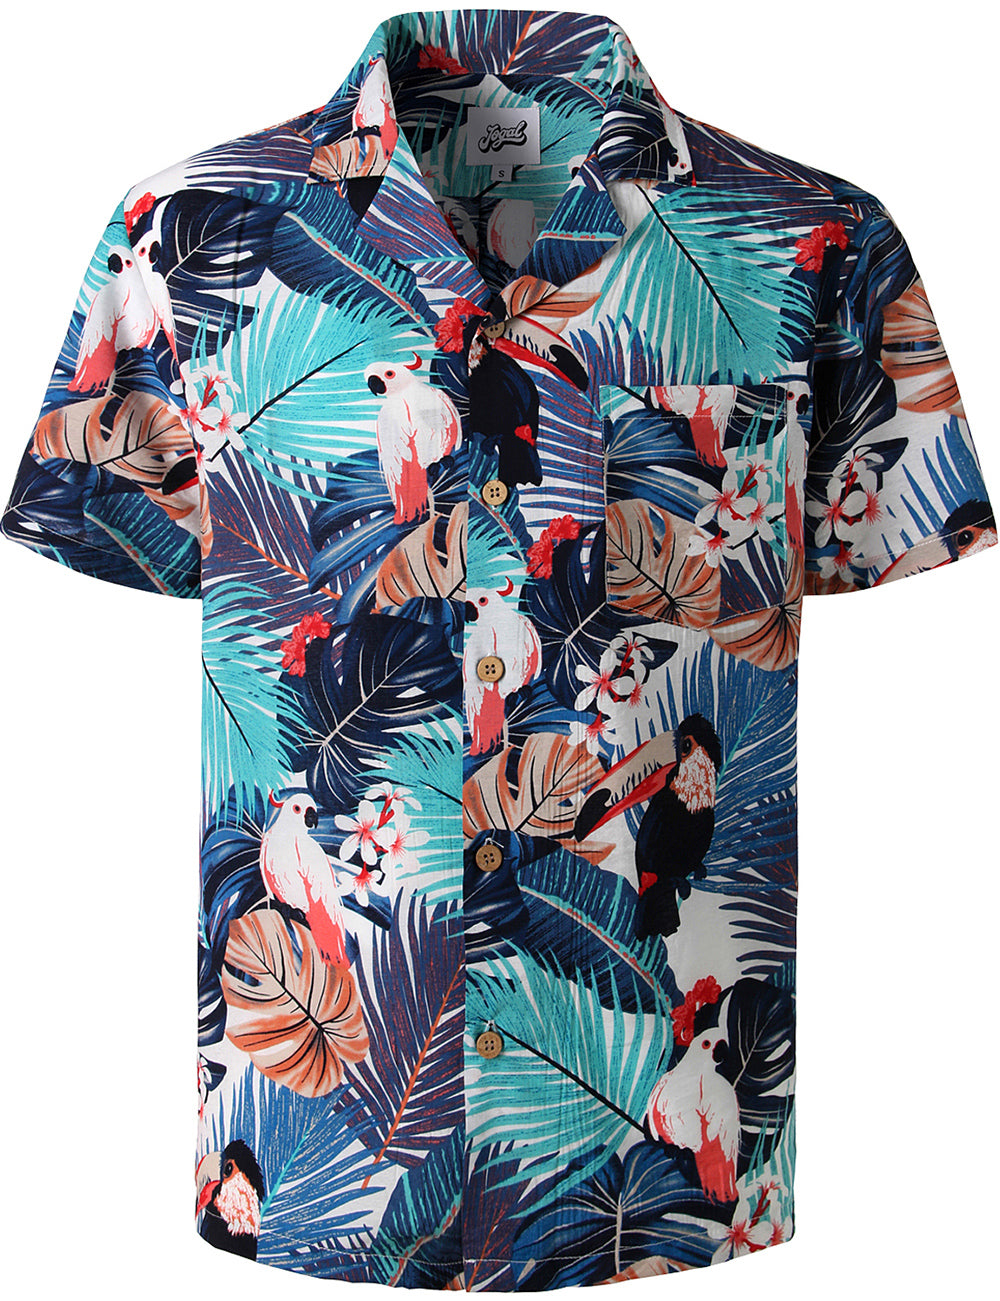 JOGAL Men's Relaxed-Fit Cotton Tropical Hawaiian Shirt(Parrots)